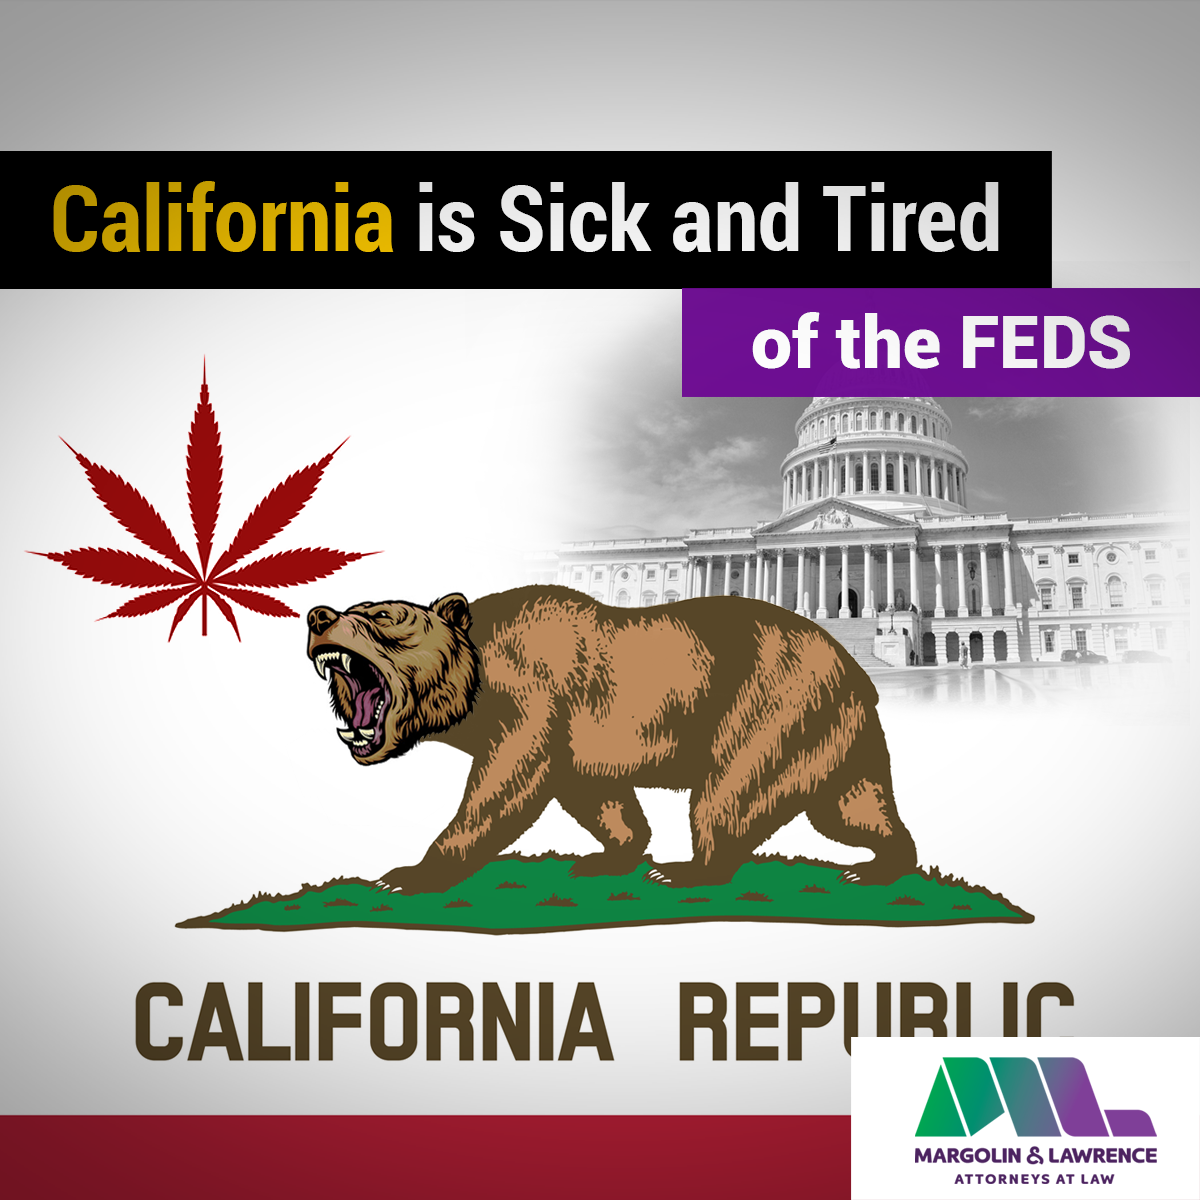 California is Sick and Tired of the Feds